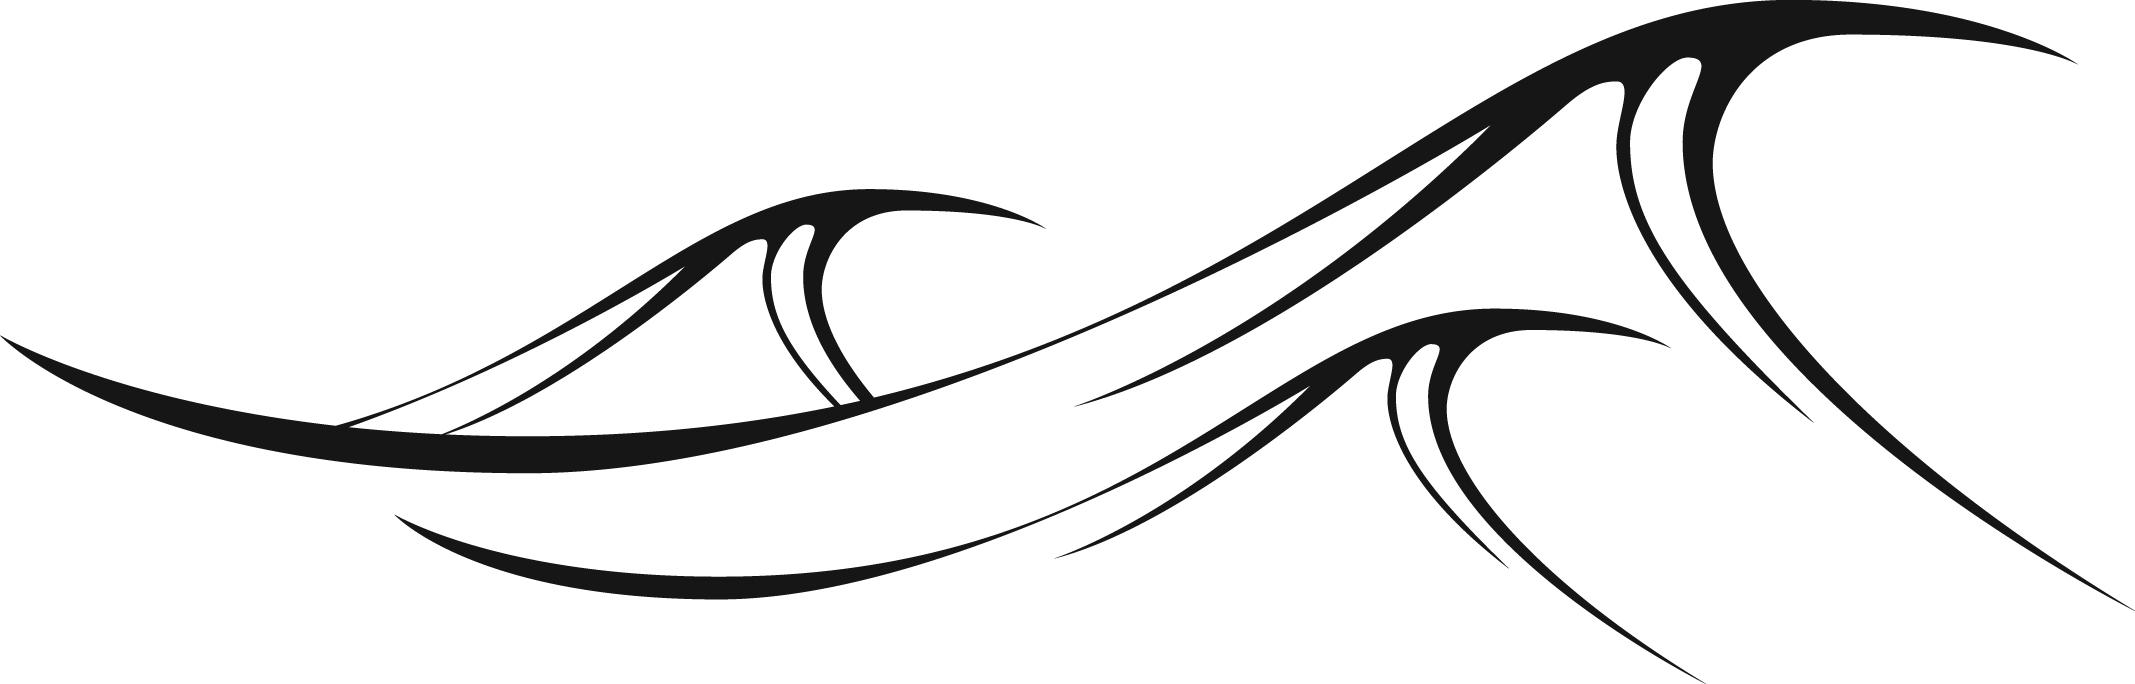 Waves black. Wave clipart free download